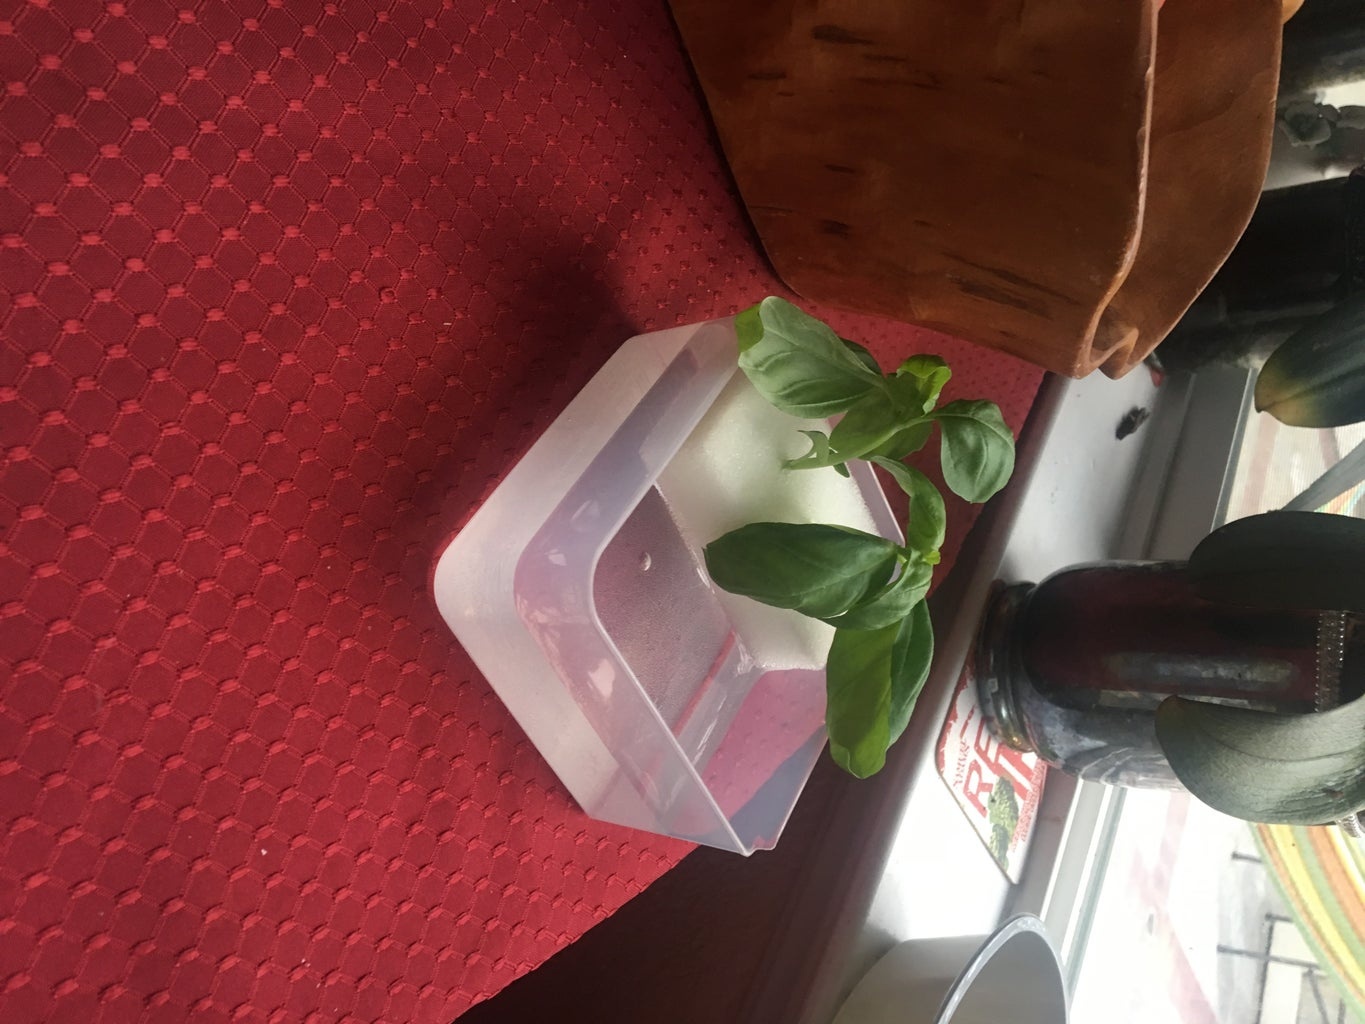 Step 4: Buying a Plant